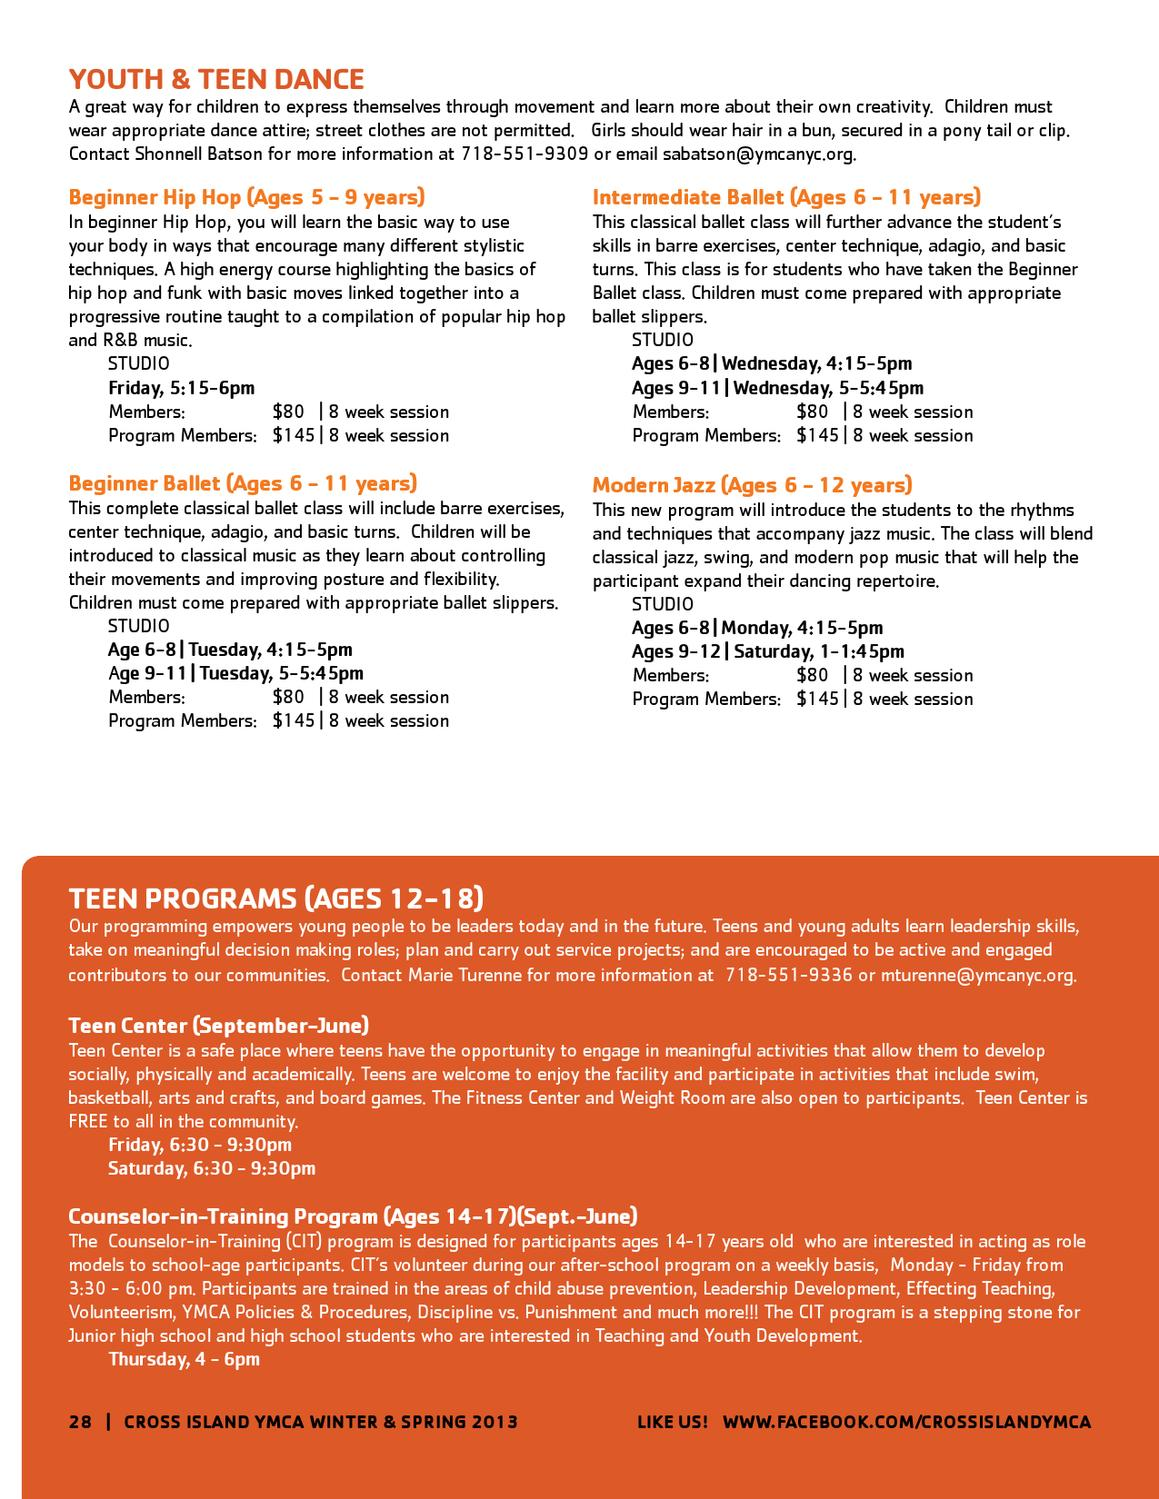 CIY Winter-Spring2013 Program Guide by New York City's YMCA